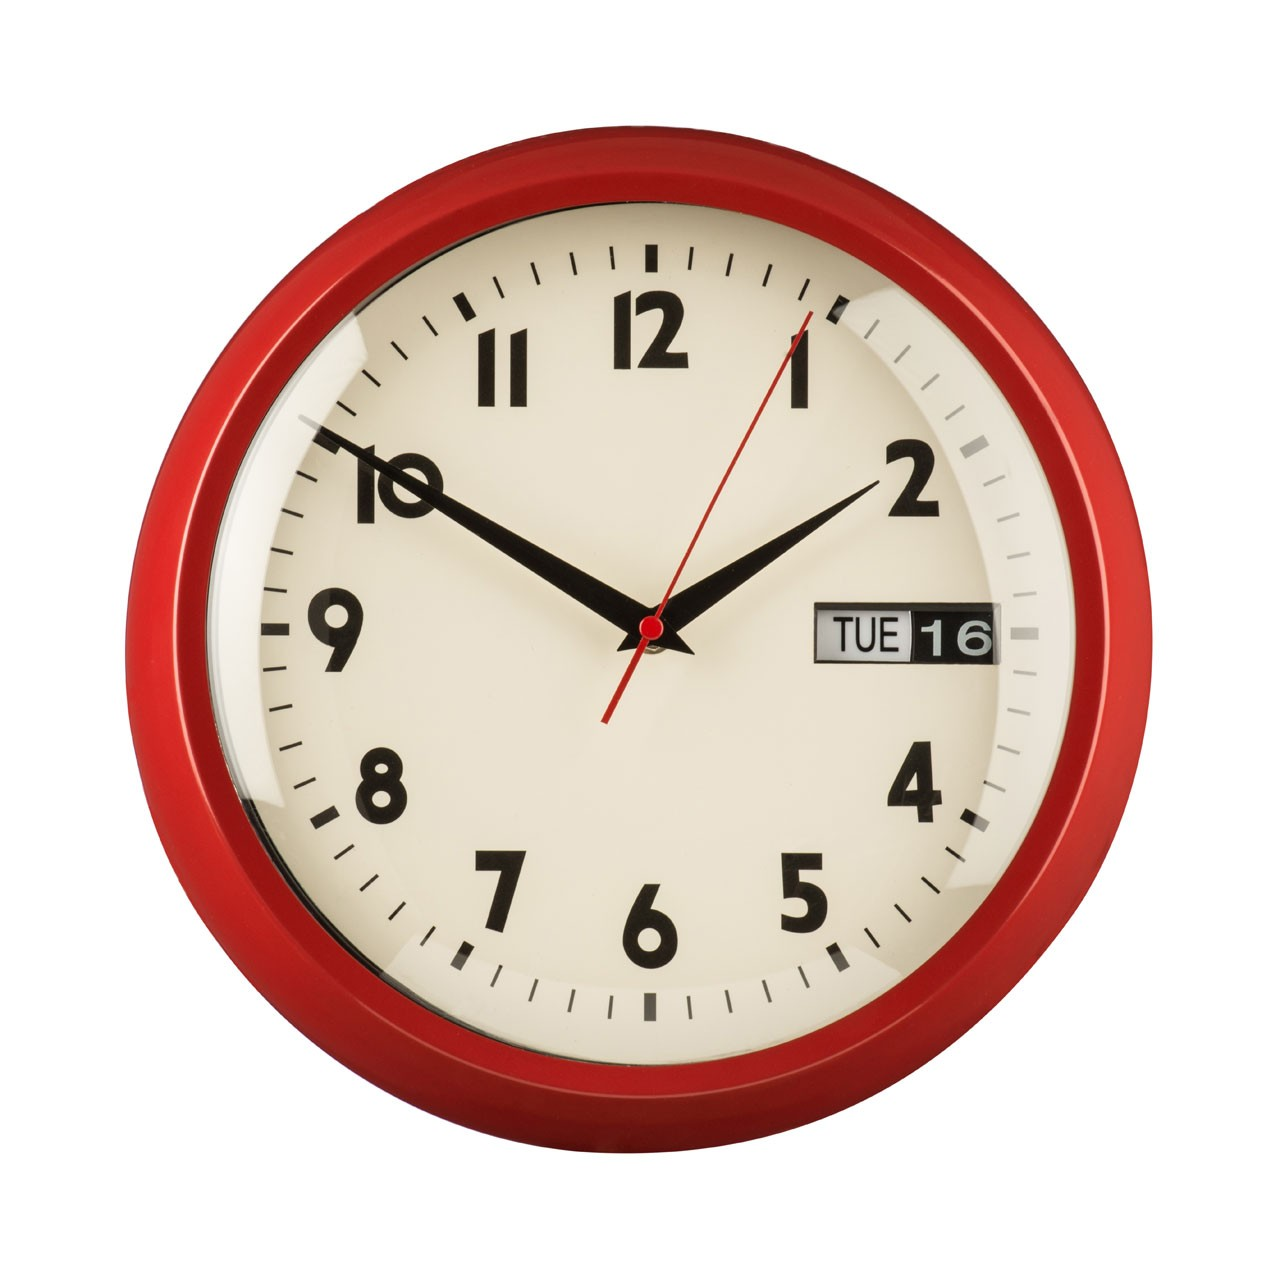 Prime Furnishing Wall Clock With Day/Date - Red